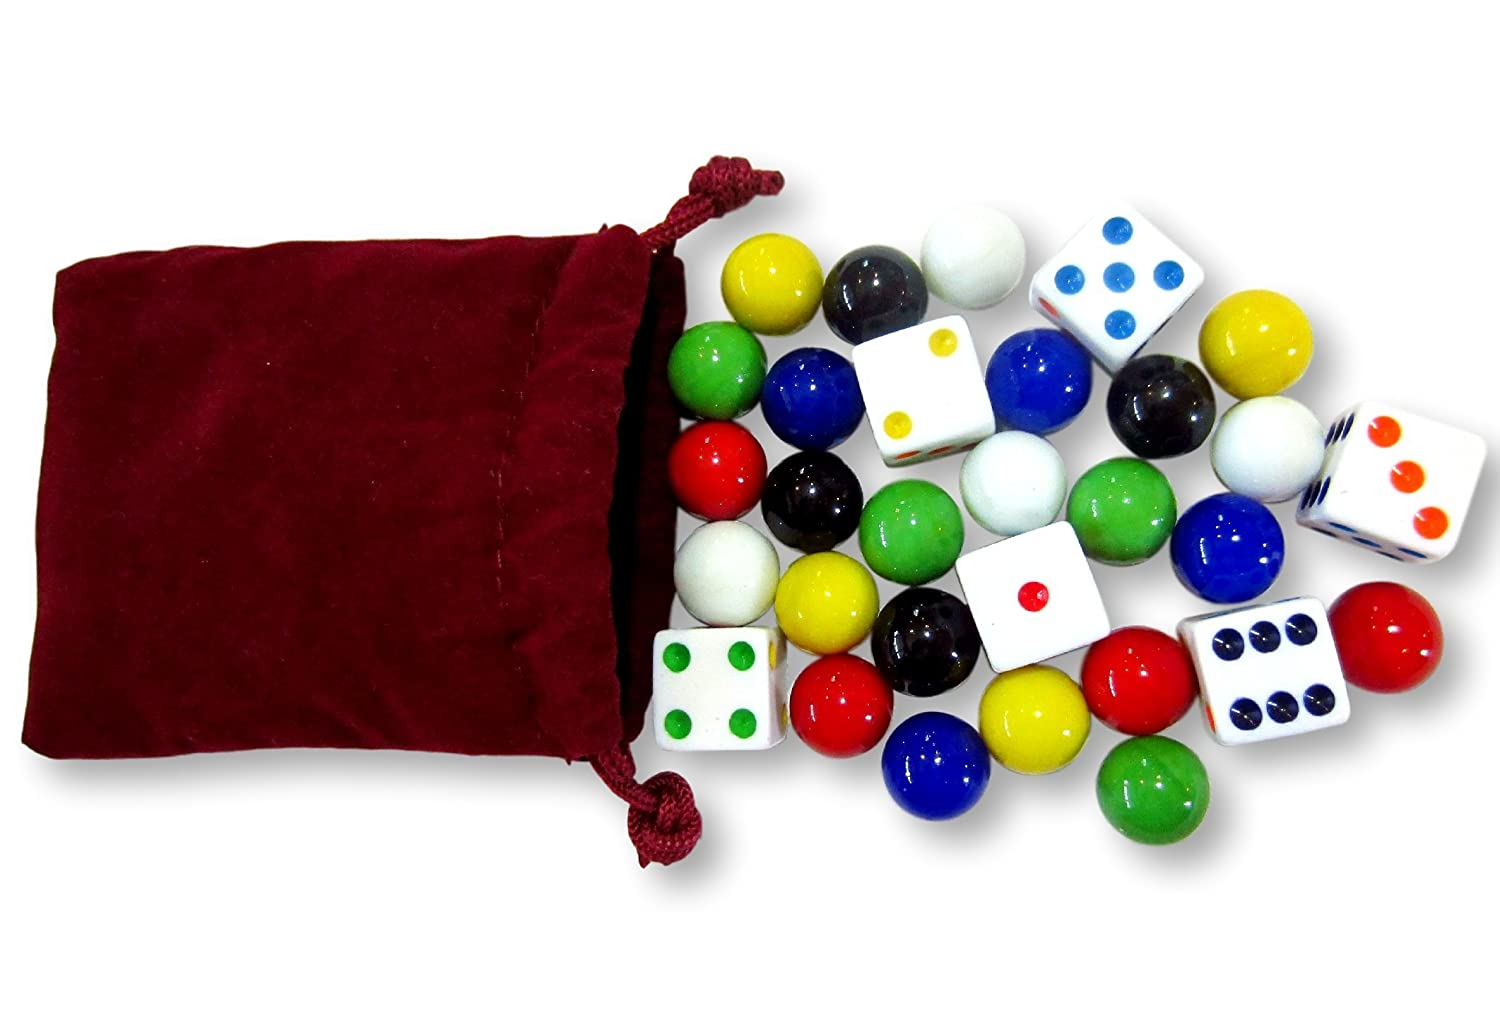 Game Bag of 24 Glass Marbles (14mm) and 6 Dice for Aggravation Game AmishToyBox.com